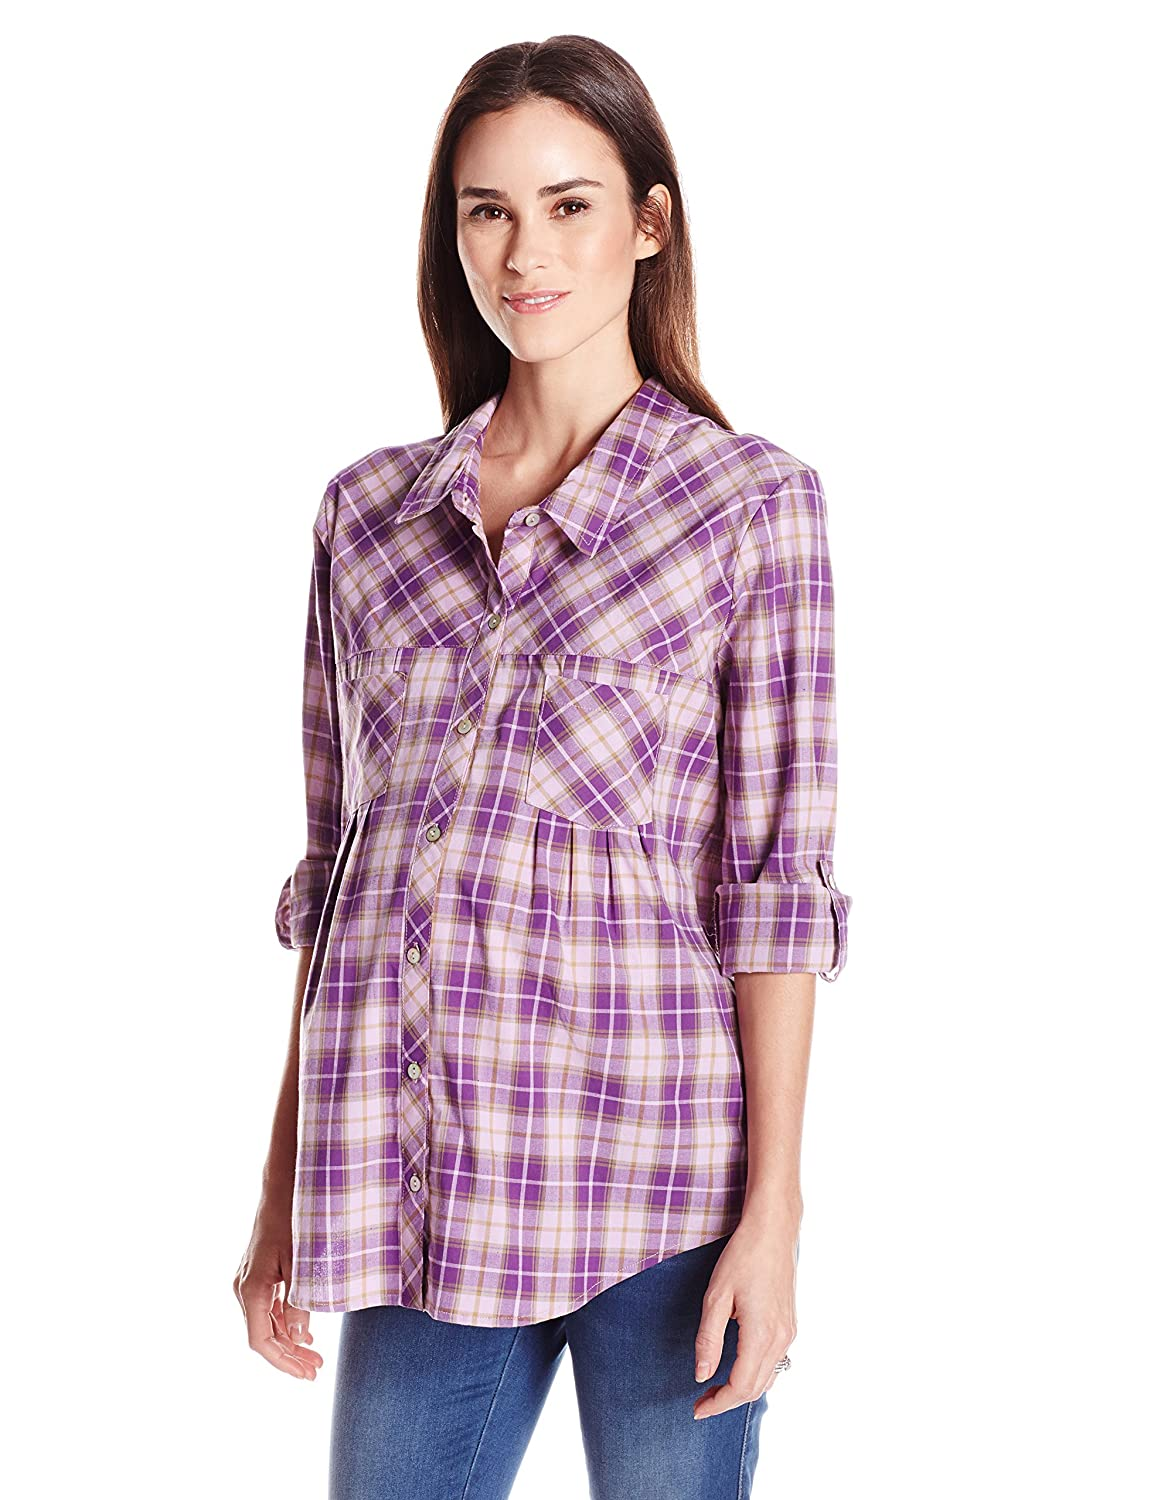 Everly Grey Womens Maternity Batina Long Sleeve Button Up Collared Maternitytop Everly Grey - Kalia Partners T791